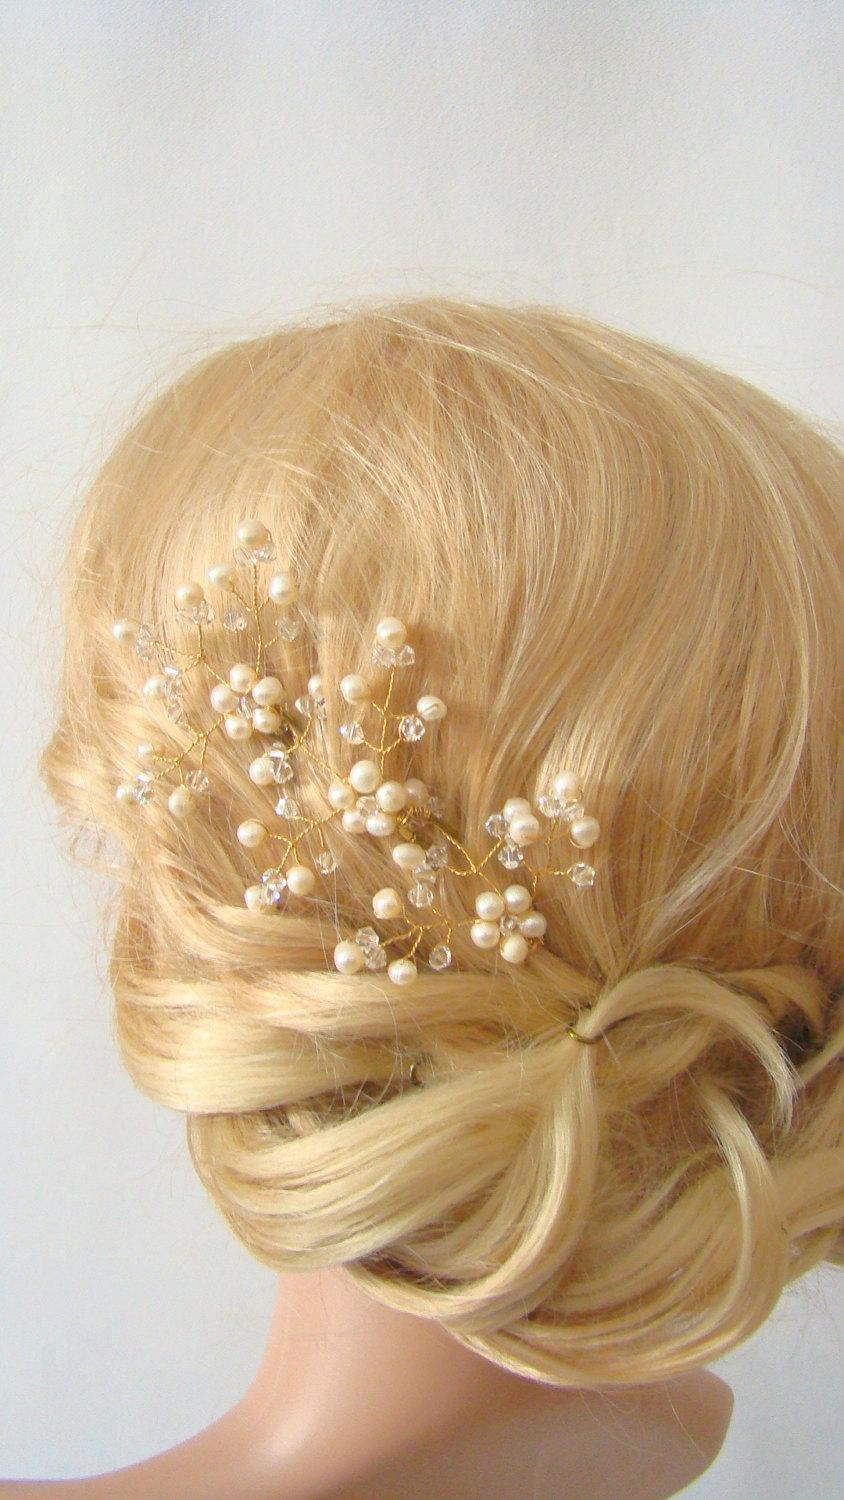 Wedding - Leaf Hair Pin, Freshwater Pearl Hair Pin, Pearl Hair Piece, Bridal Hair Pin, Wedding Hair Pin Set of 3, Gold Hair Pin, Gold Hair Accessories